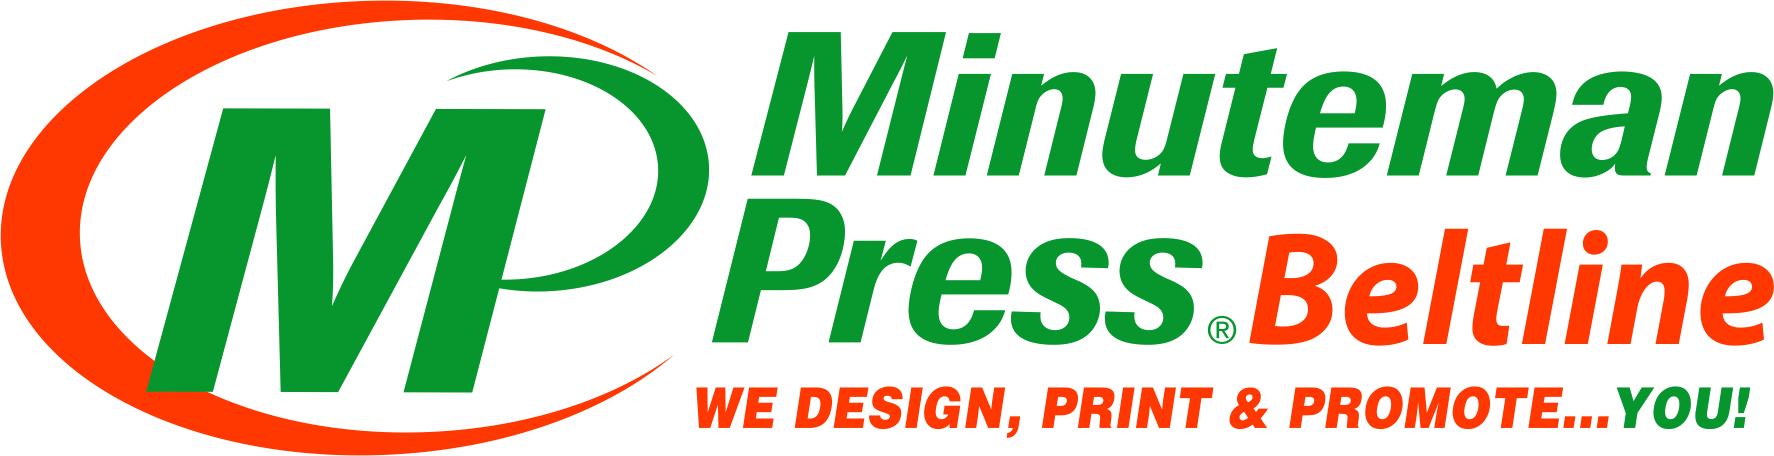 Minuteman Press Beltline, Calgary, AB